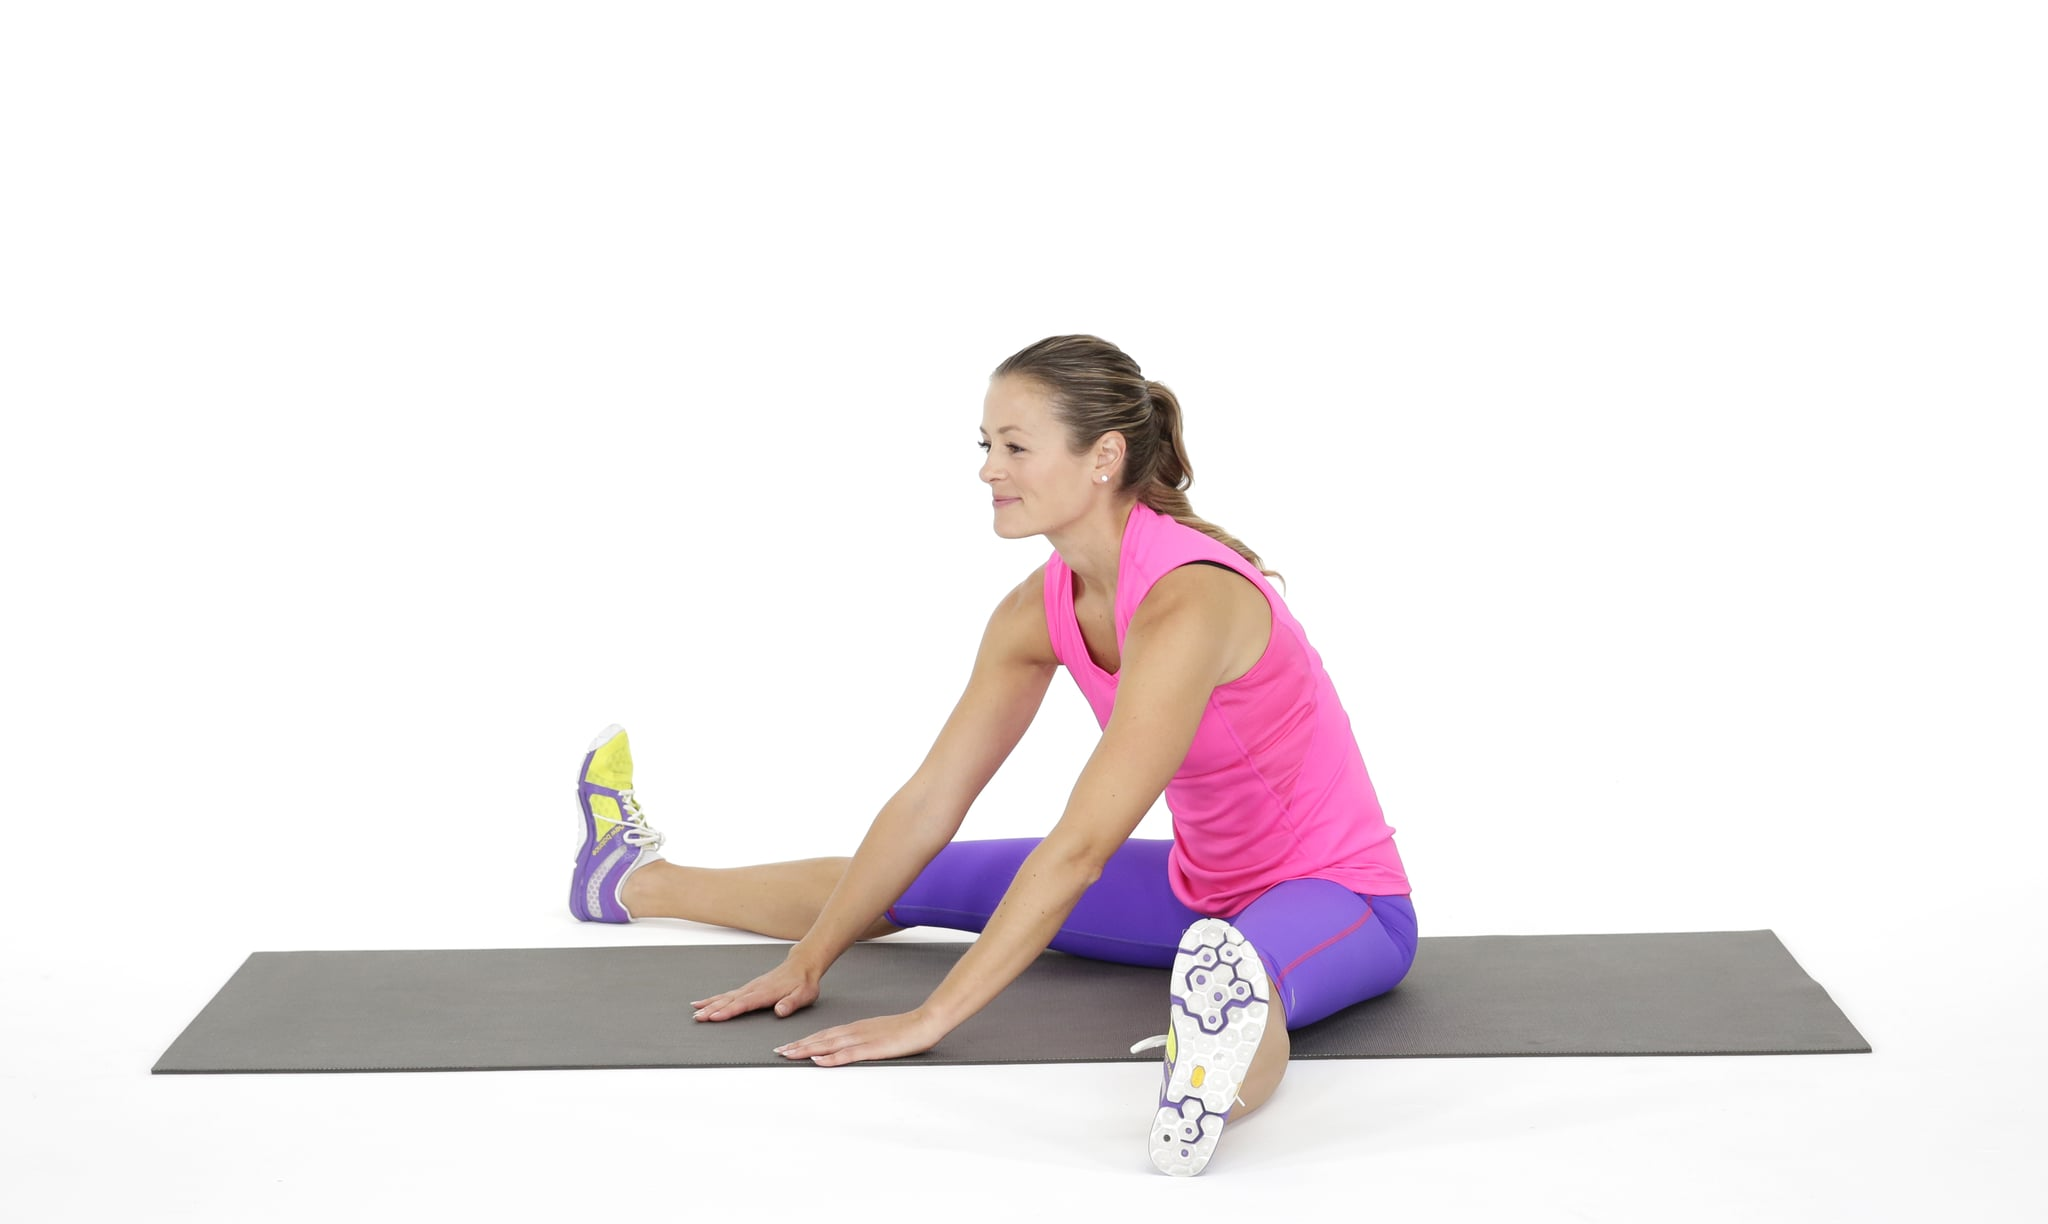 Straddle Stretch | These Are the Hip Stretches Your Body Needs Stat | POPSUGAR Fitness Photo 6